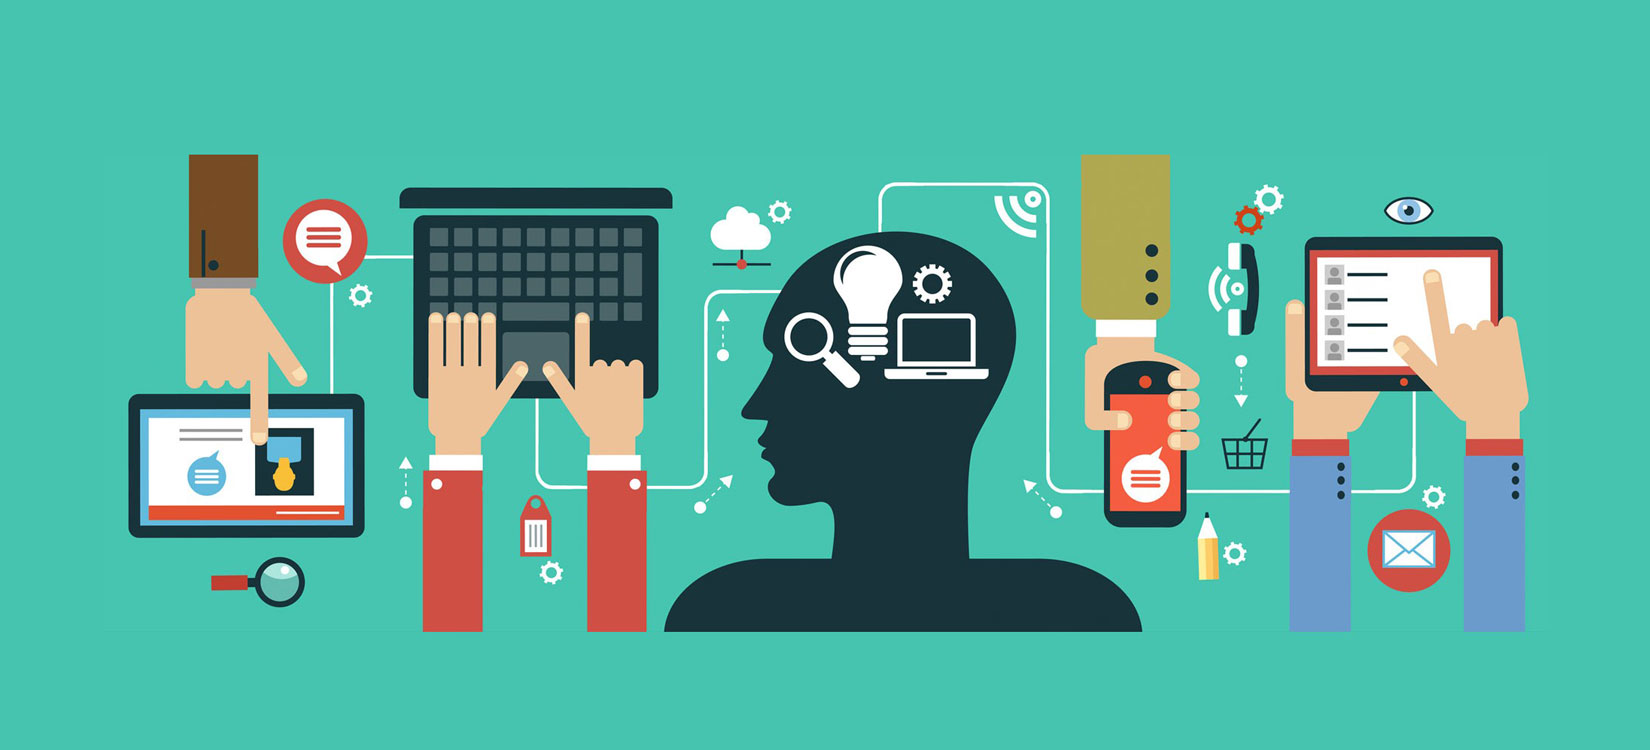 Using Digital Media to Build Your Business and Brand